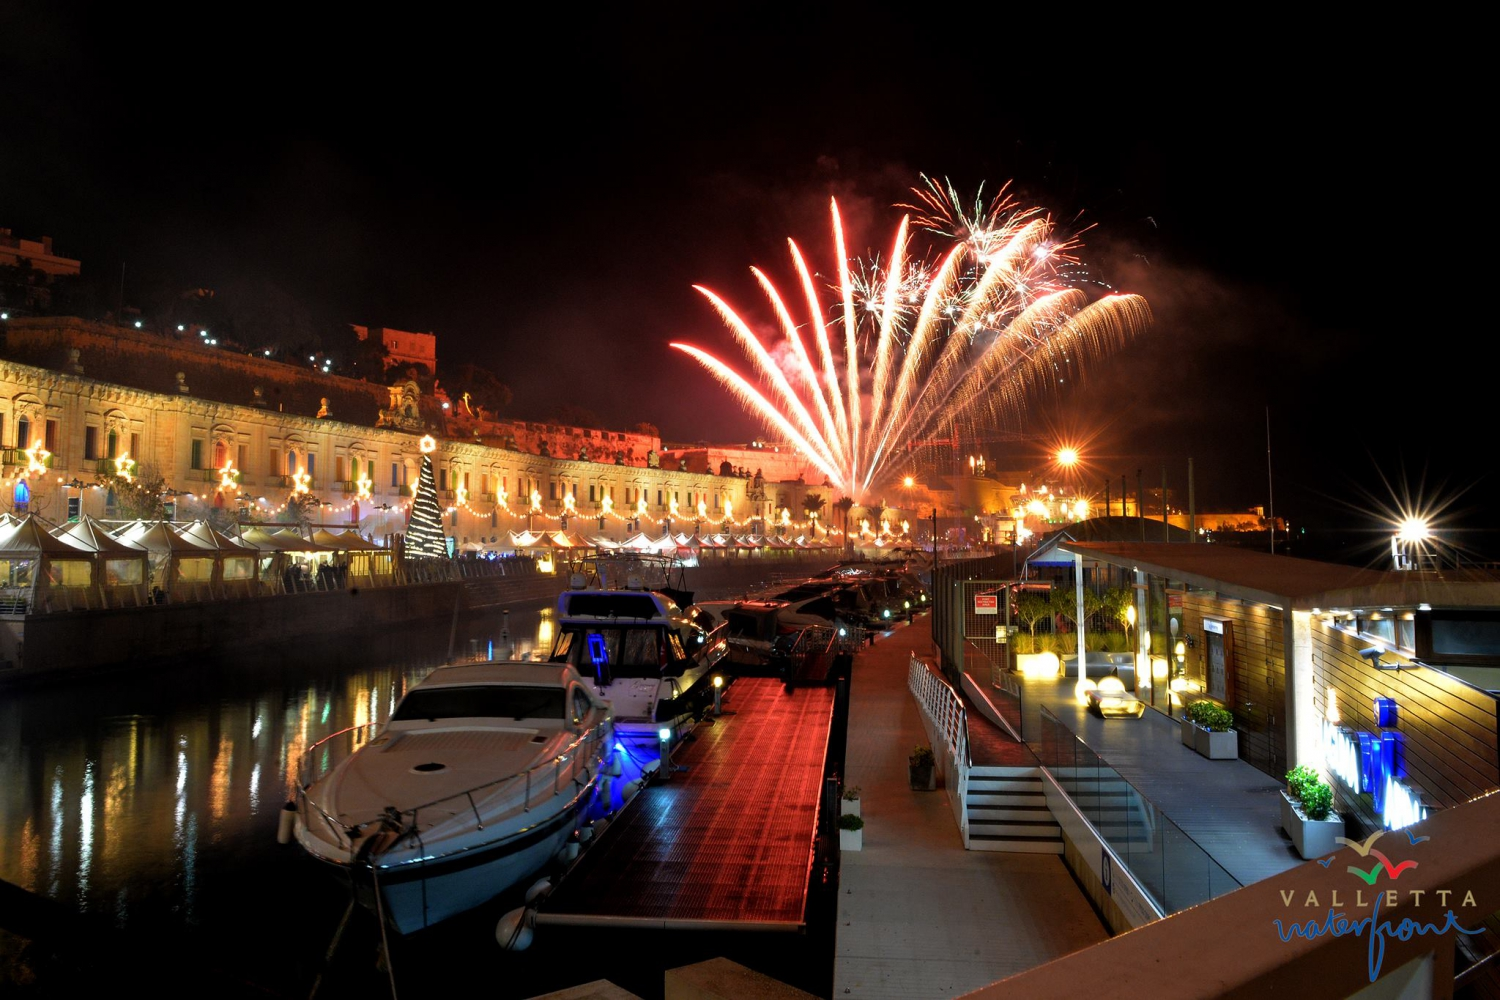 New Year's Eve at Valletta Waterfront